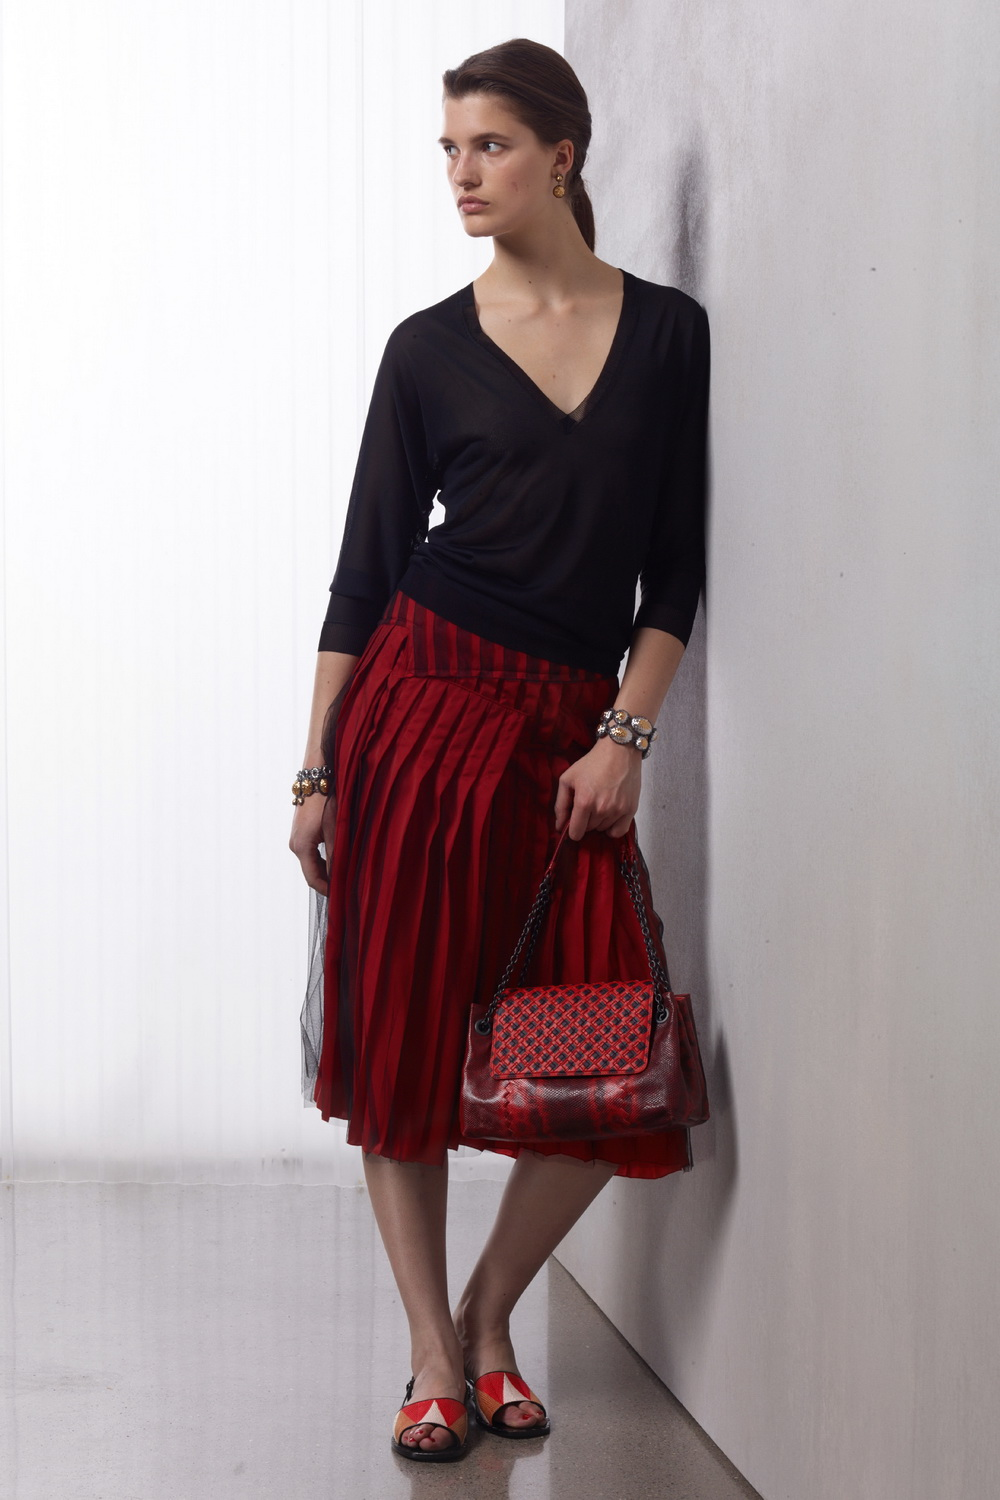 BOTTEGA VENETA WOMEN'S CRUISE 2015/2016